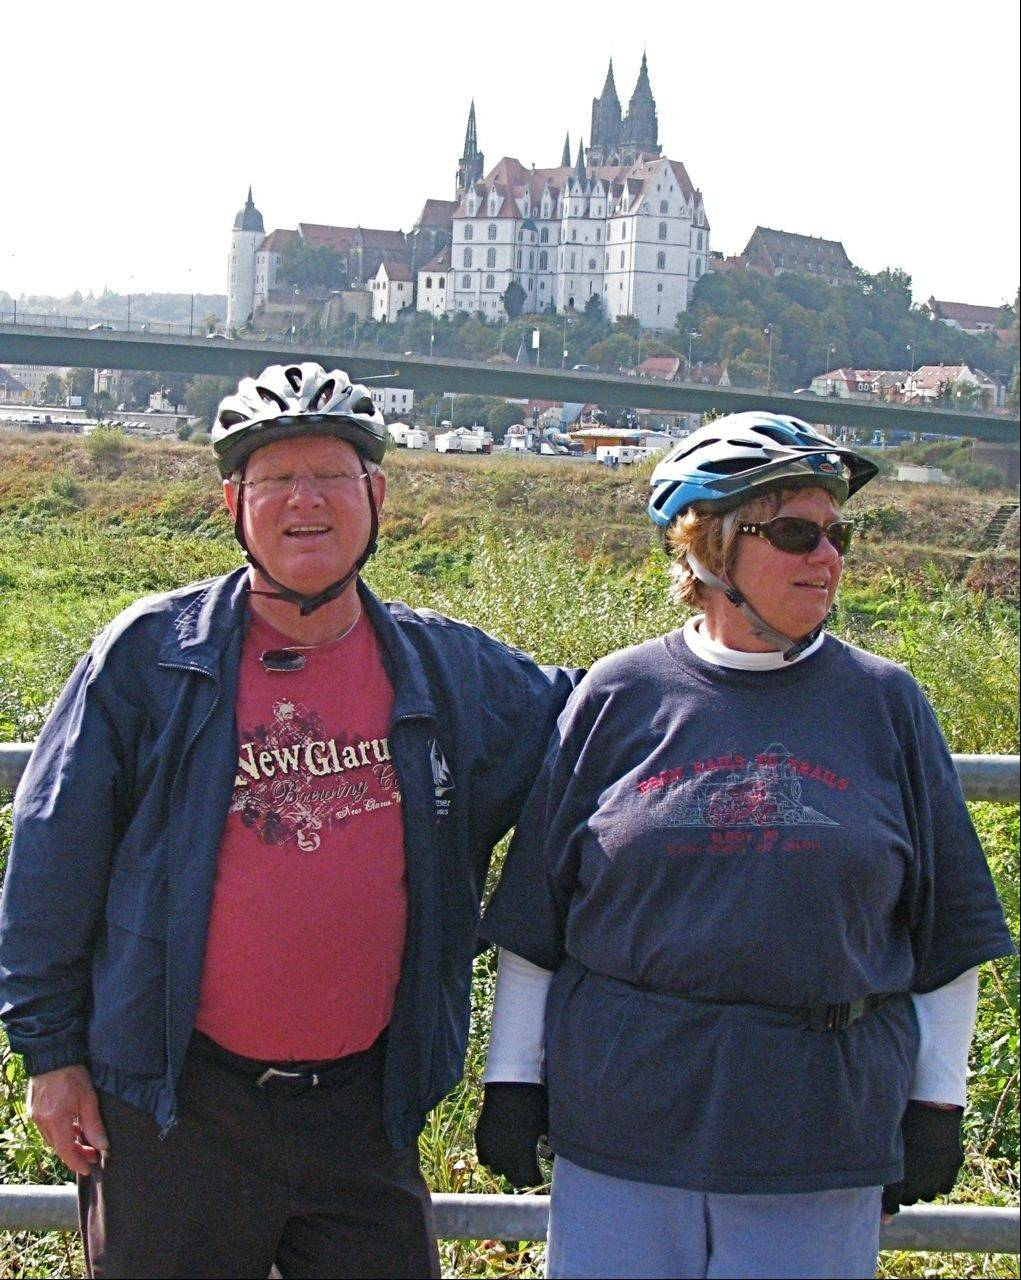 Jim and Kathleen Secora of Hoffman Estates are seasoned Road Scholar travelers. They have taken two of the company's bike-trip educational adventures in Europe.